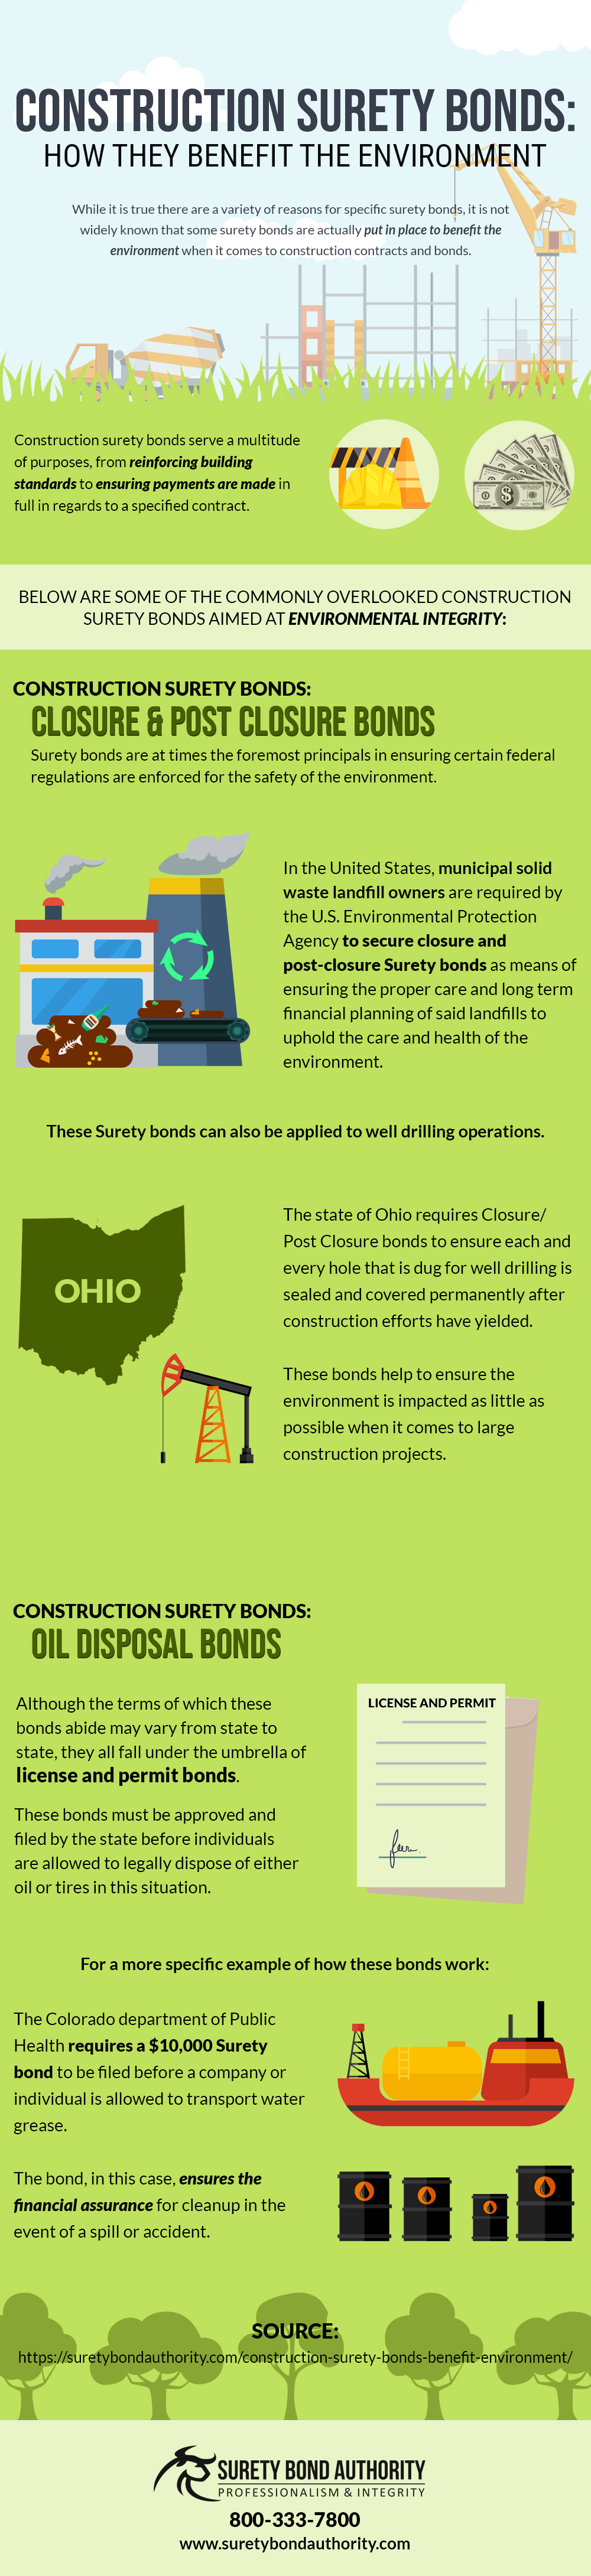 Construction Surety Bonds Infographic